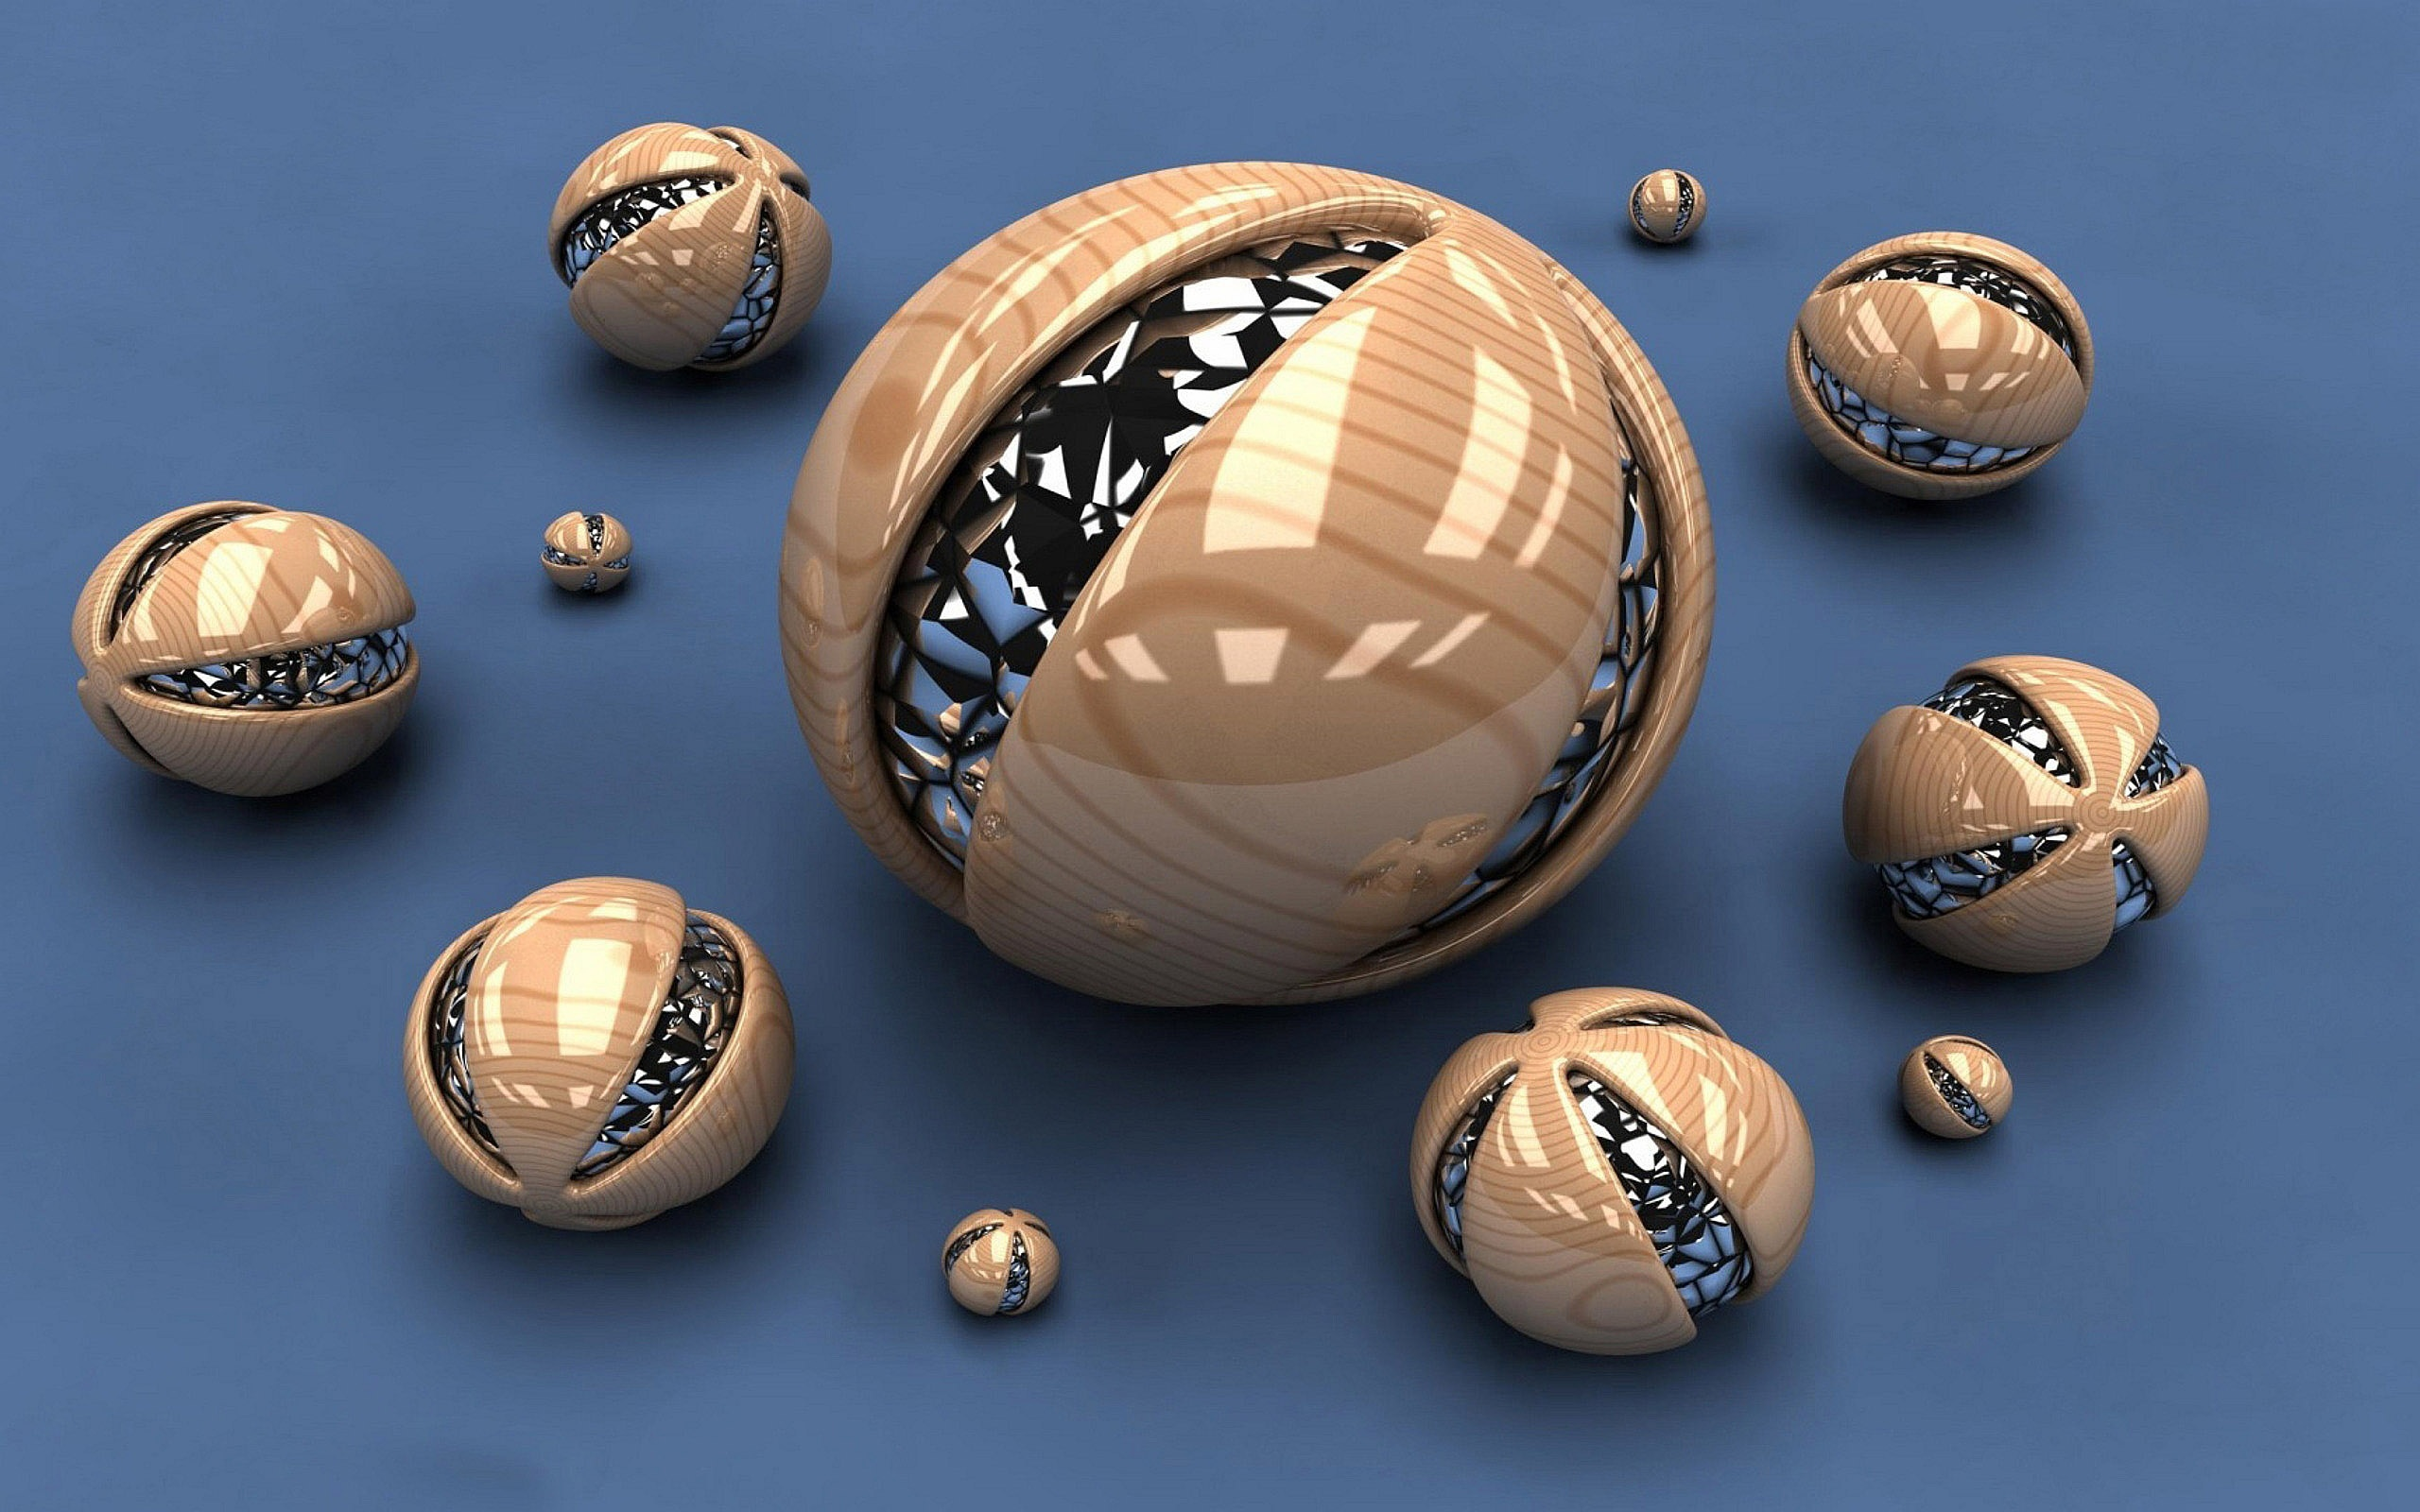 Cool 3D Spheres Wallpaper in 2560x1600 Widescreen